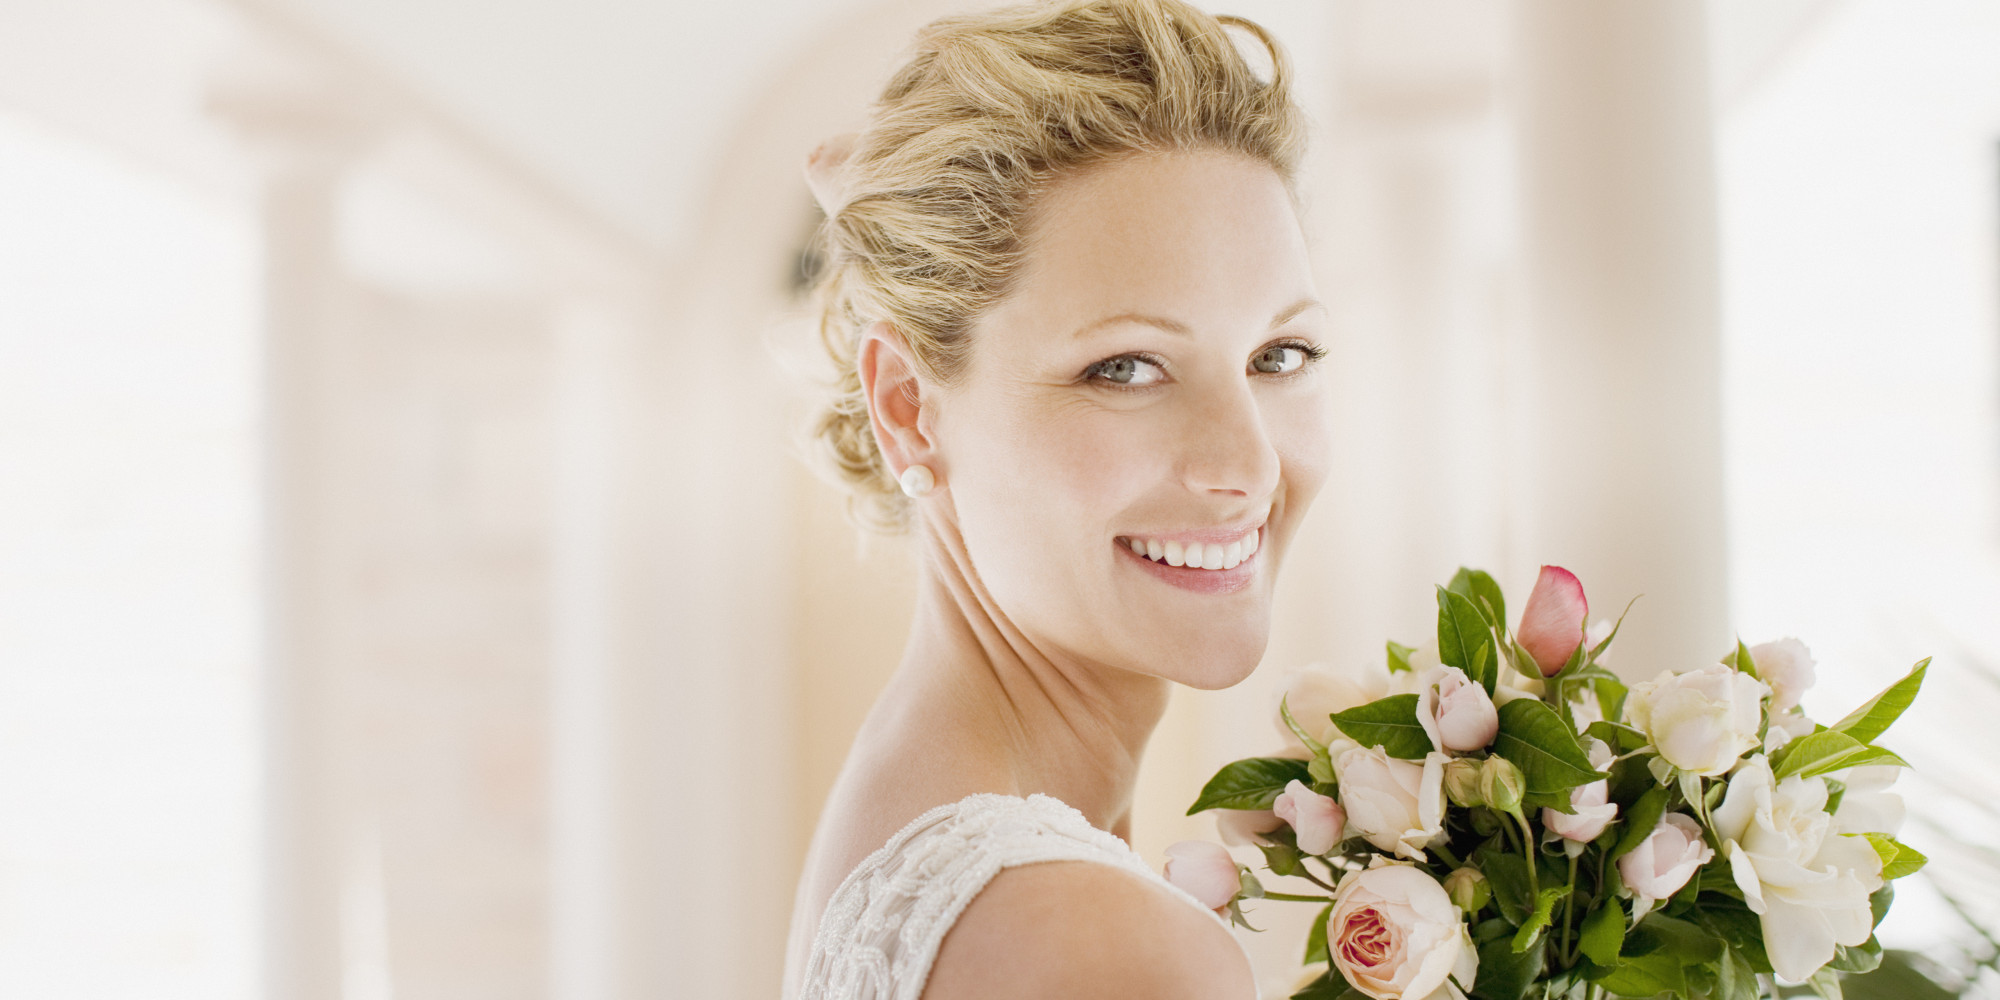 wedding makeup: what every bride should know | huffpost